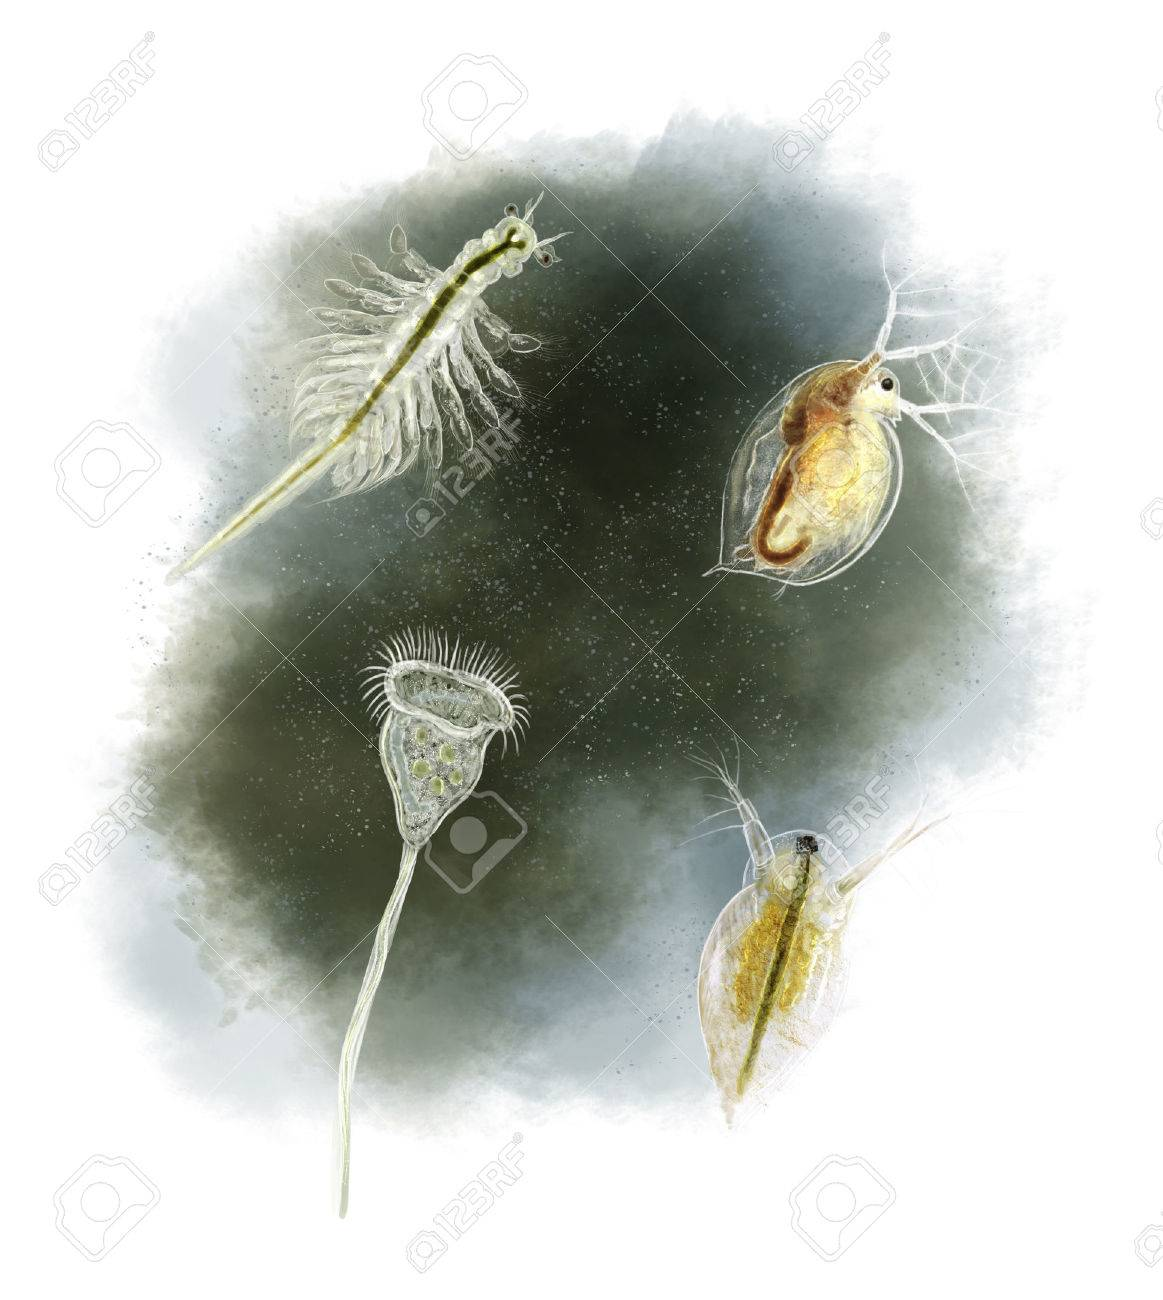 Digital Illustration Of A Daphnia, Vorticella And Brine Shrimp Stock ...